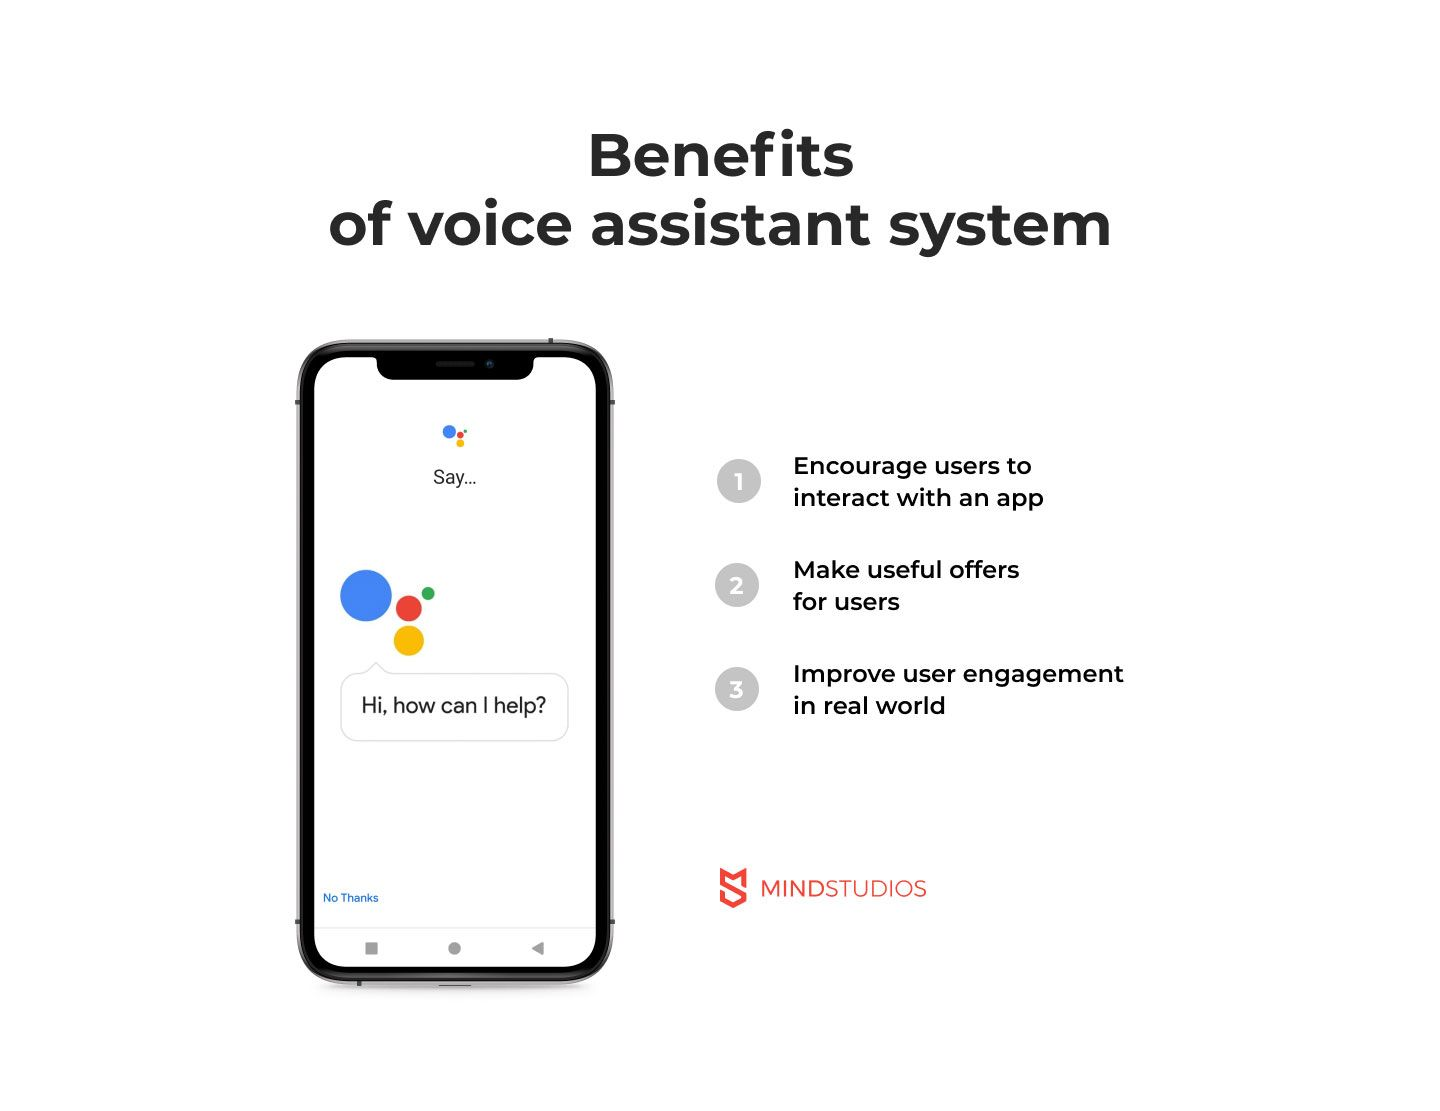 Voice assistant system benefits